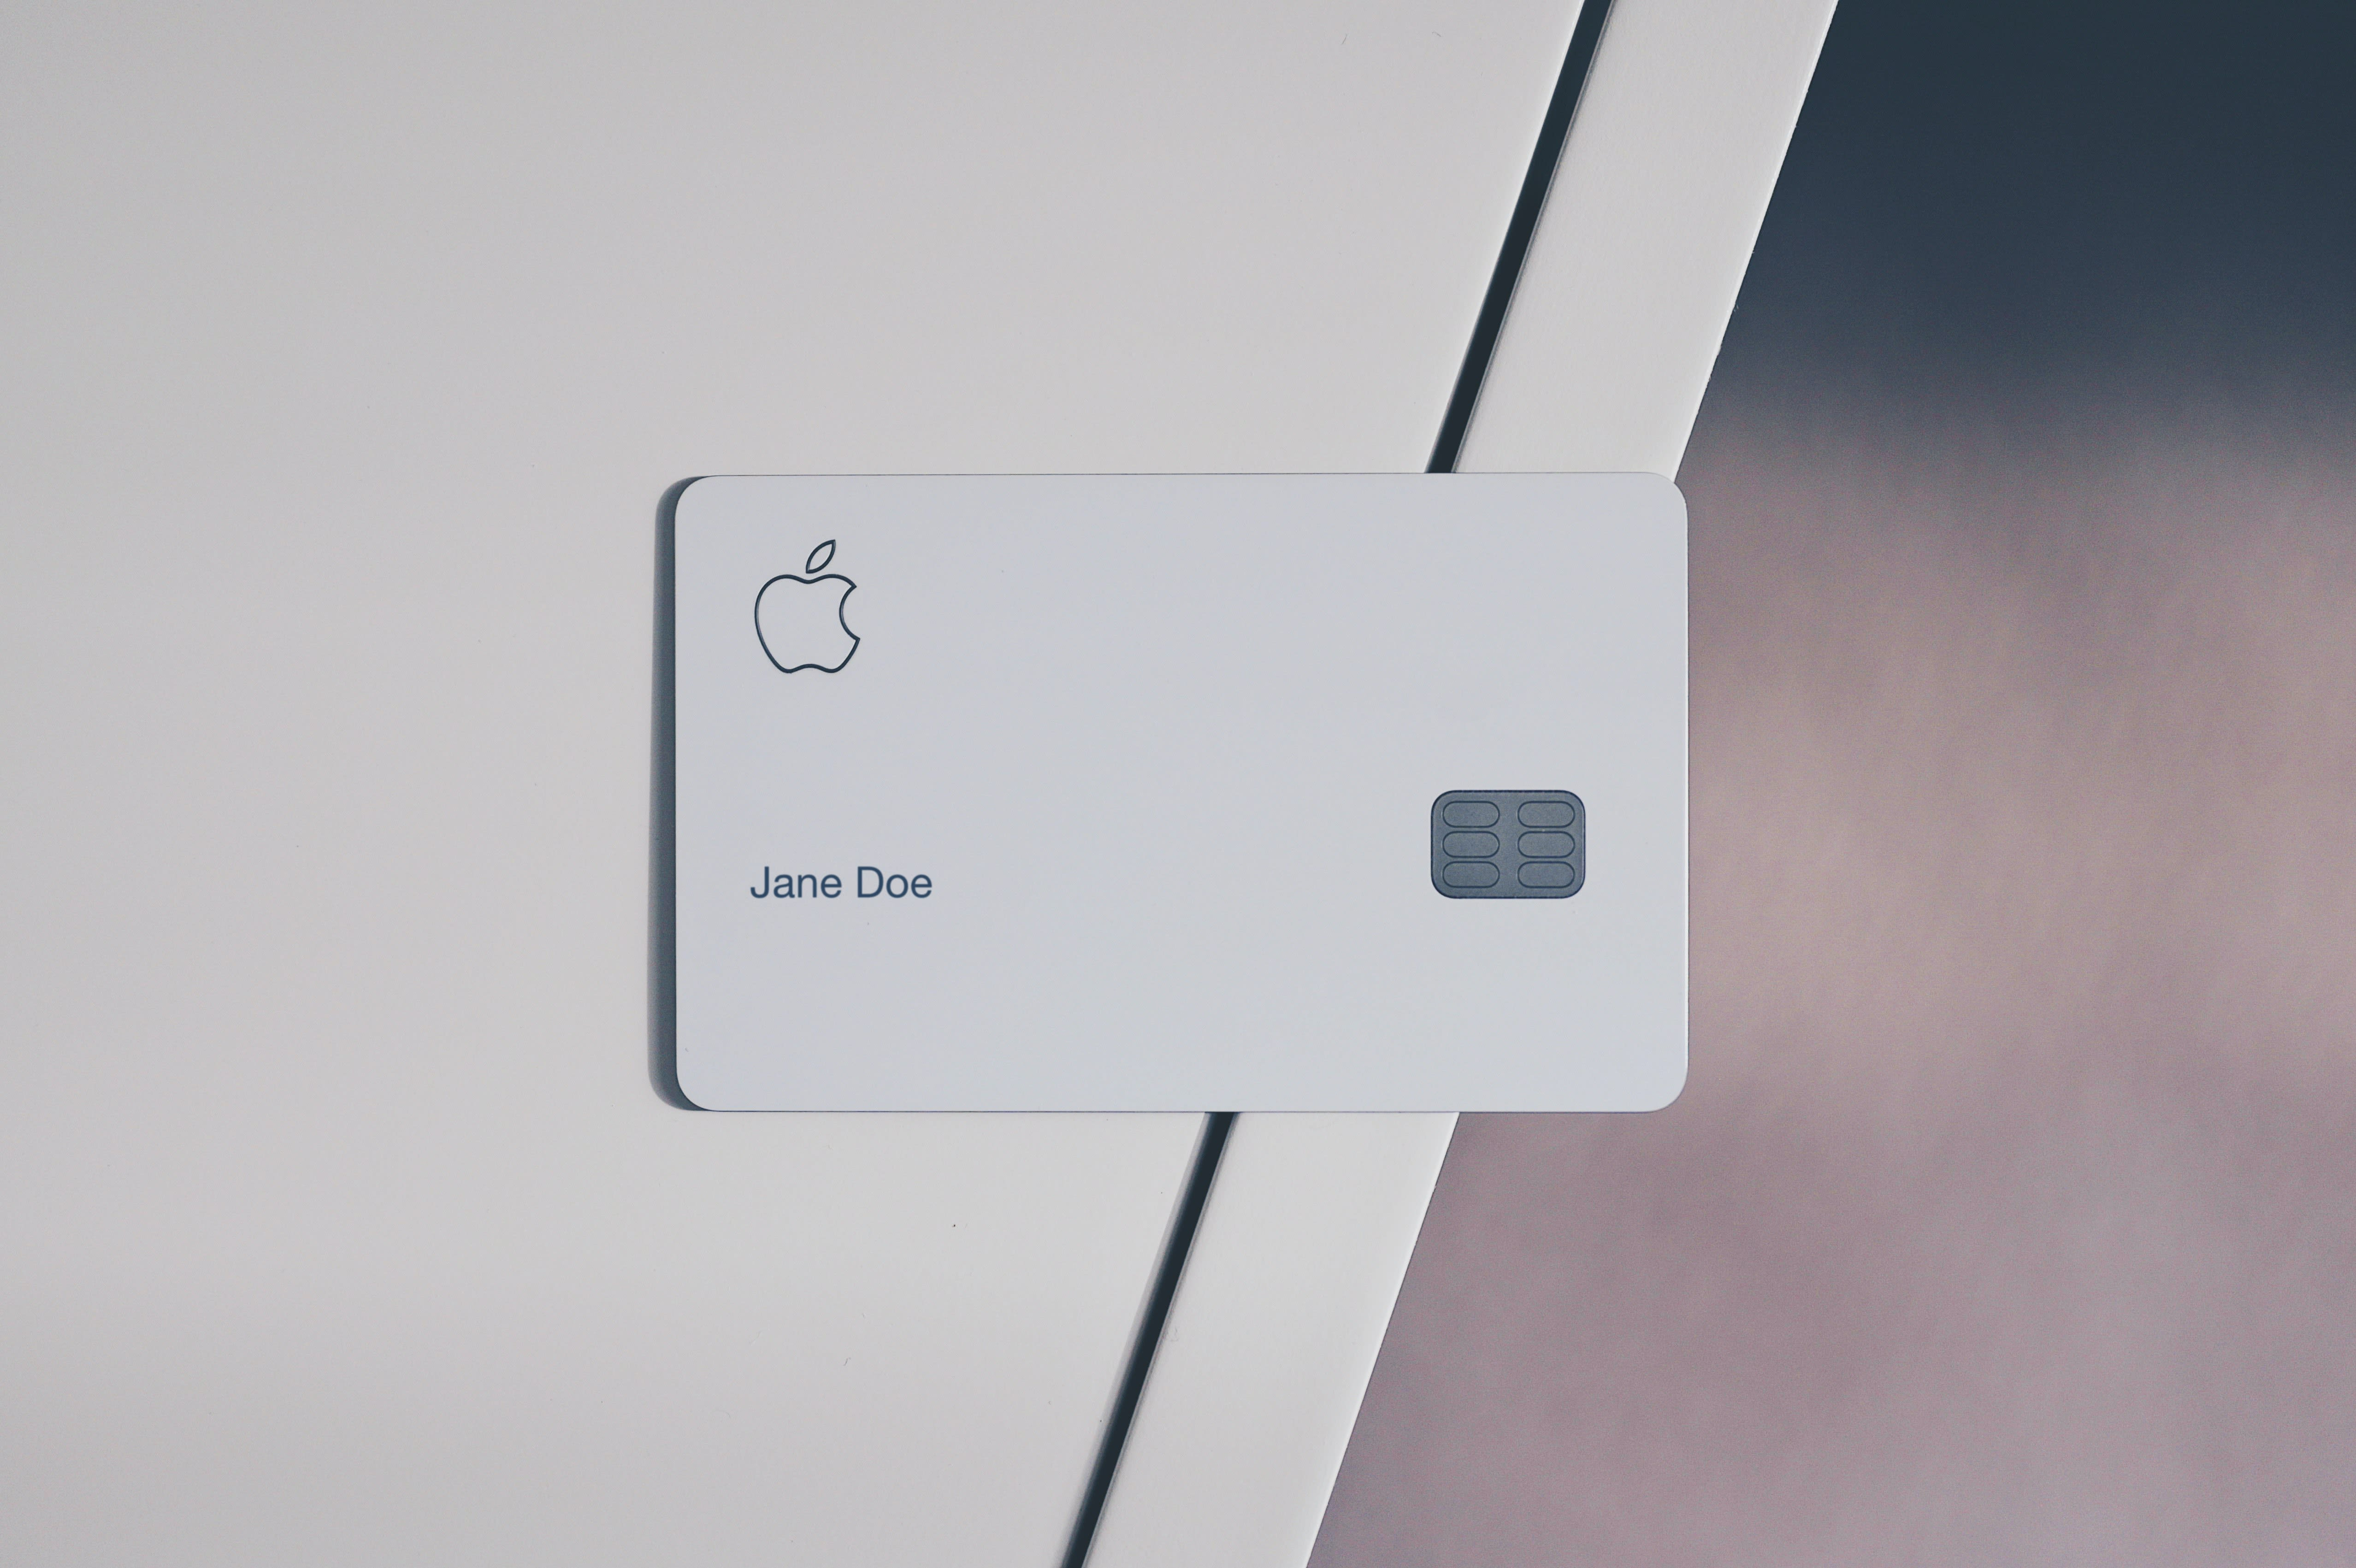 apple-card-users-get-quick-payment-options-and-discounts-at-panera-bread-20200814-1